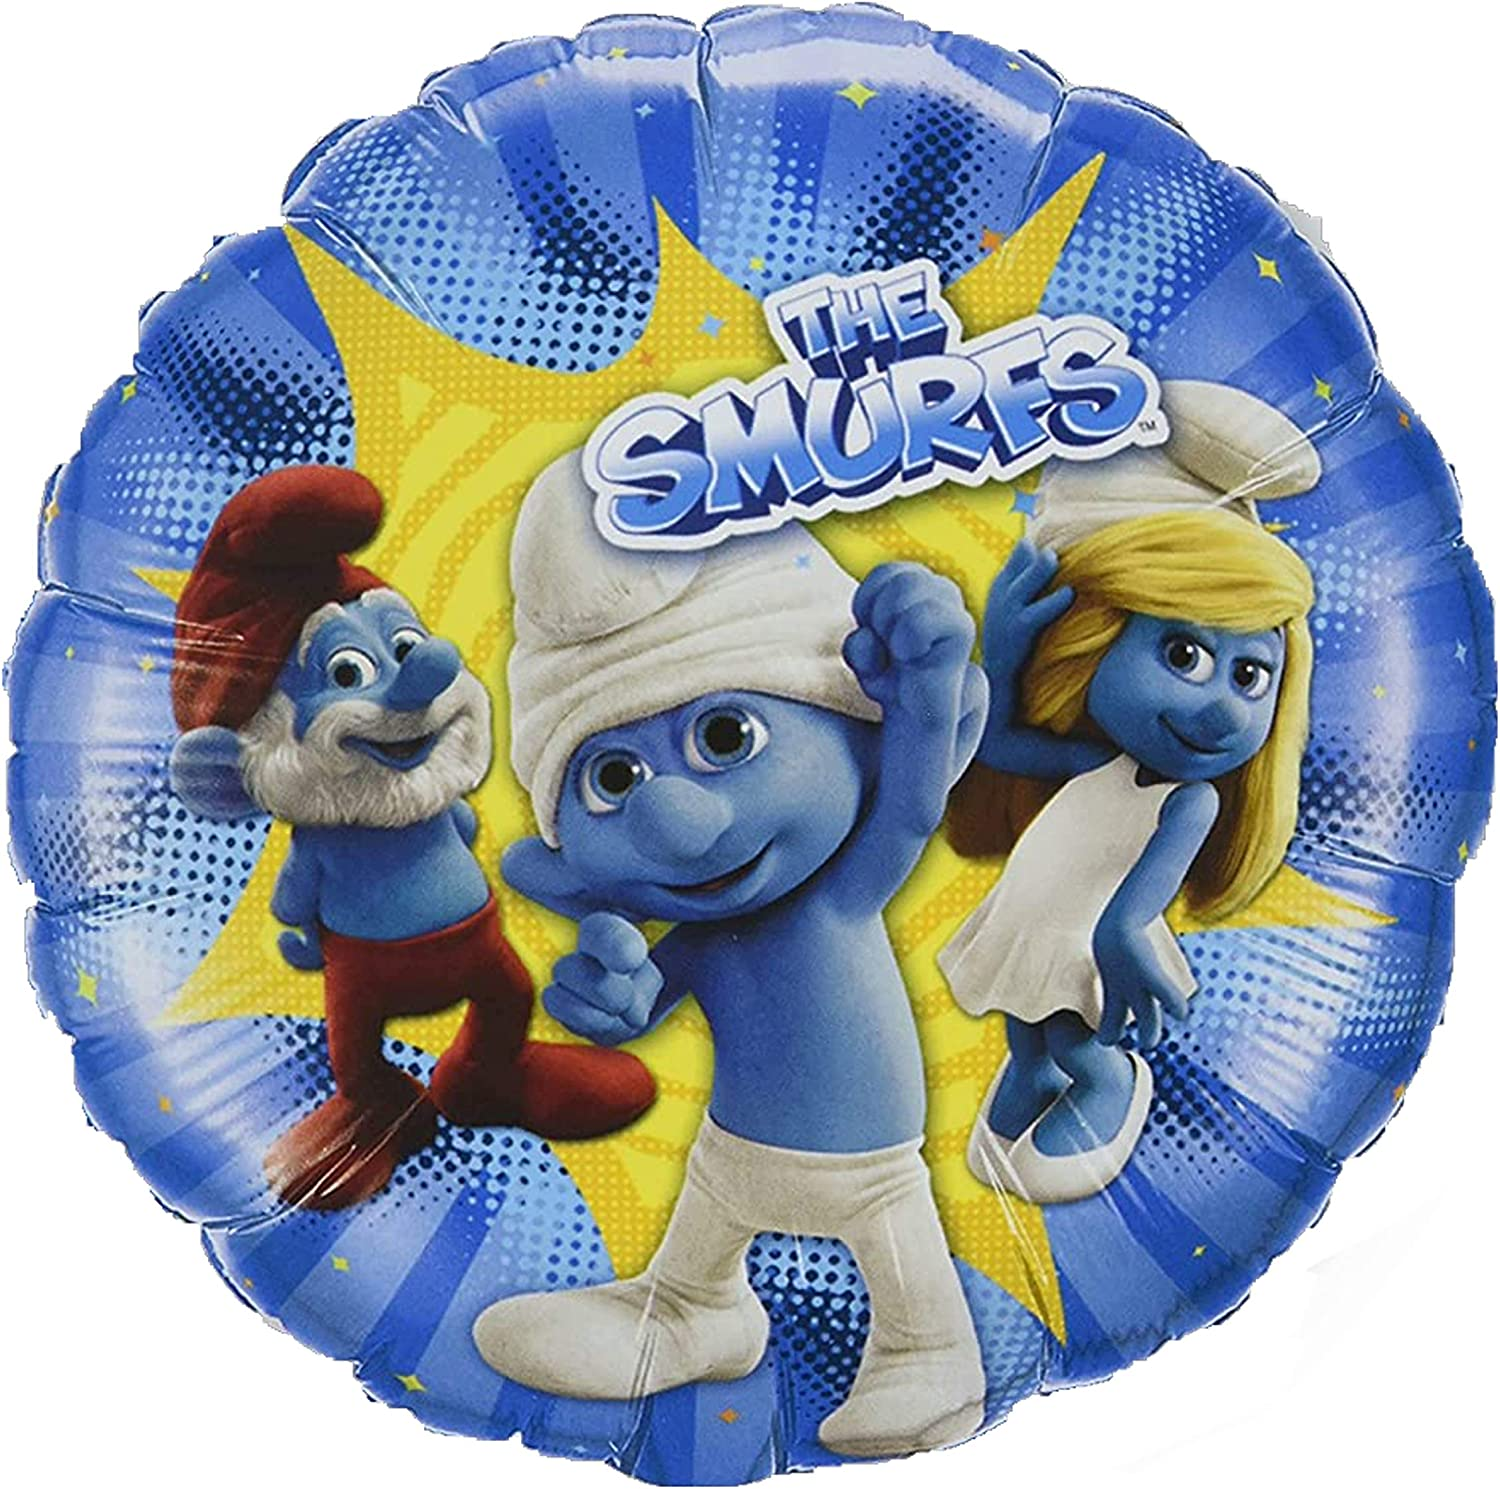 6 Balloons-Air Balloons The Smurfs Smurf Party Children Birthday